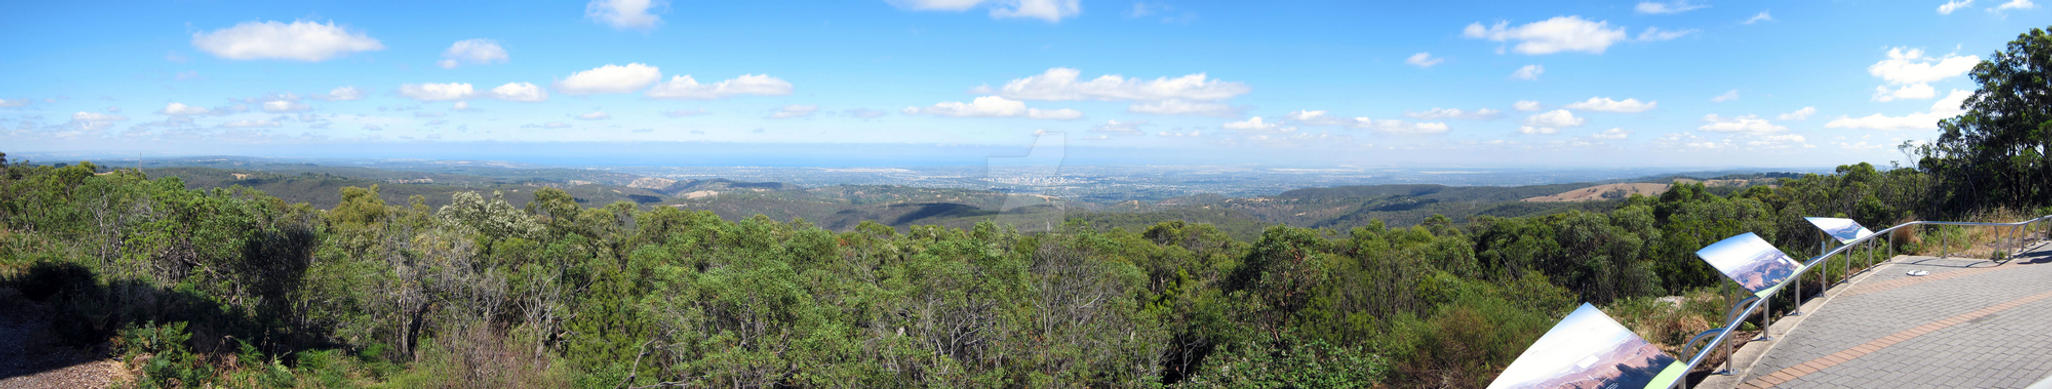 View of Adelaide from Mount Lofty December 2015 by Badooleoo